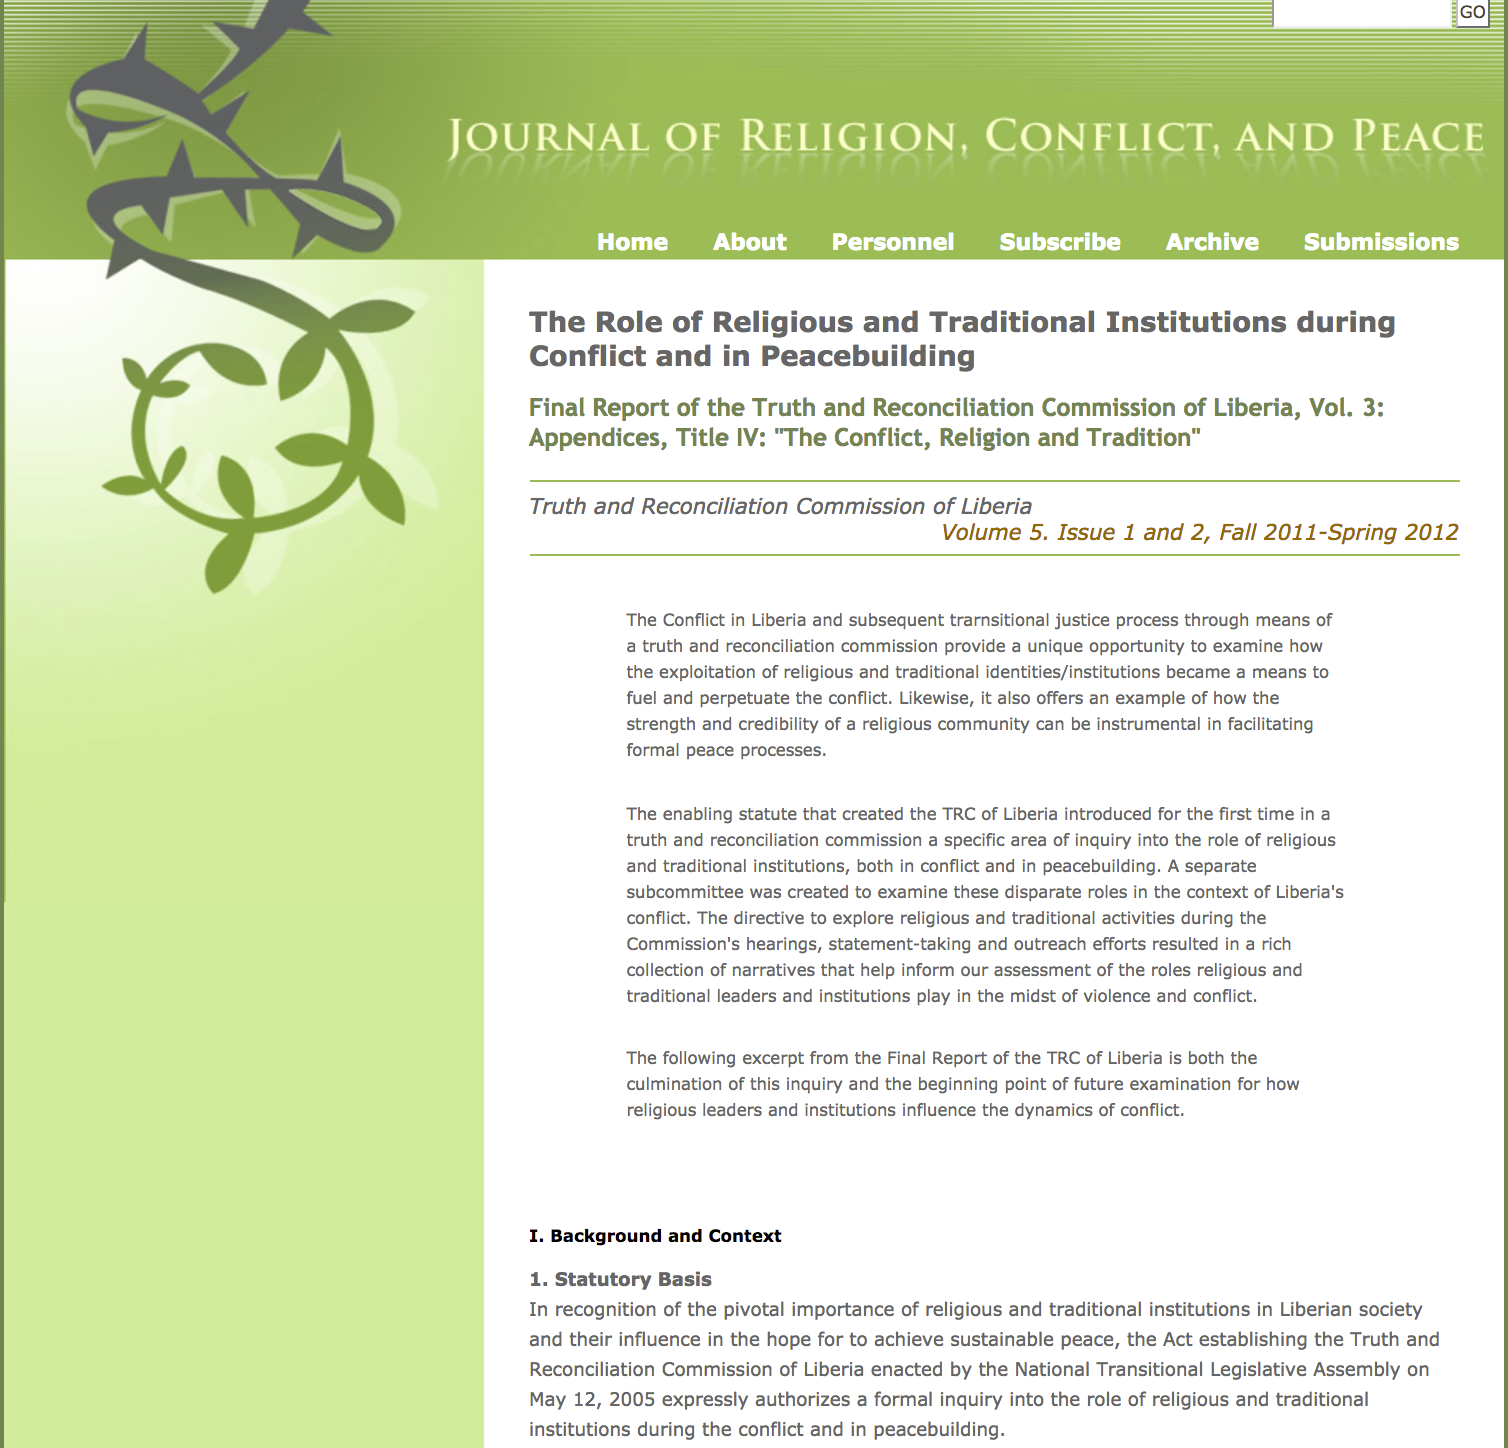 The Role of Religious and Traditional Institutions during Conflict and in Peacebuilding cover image